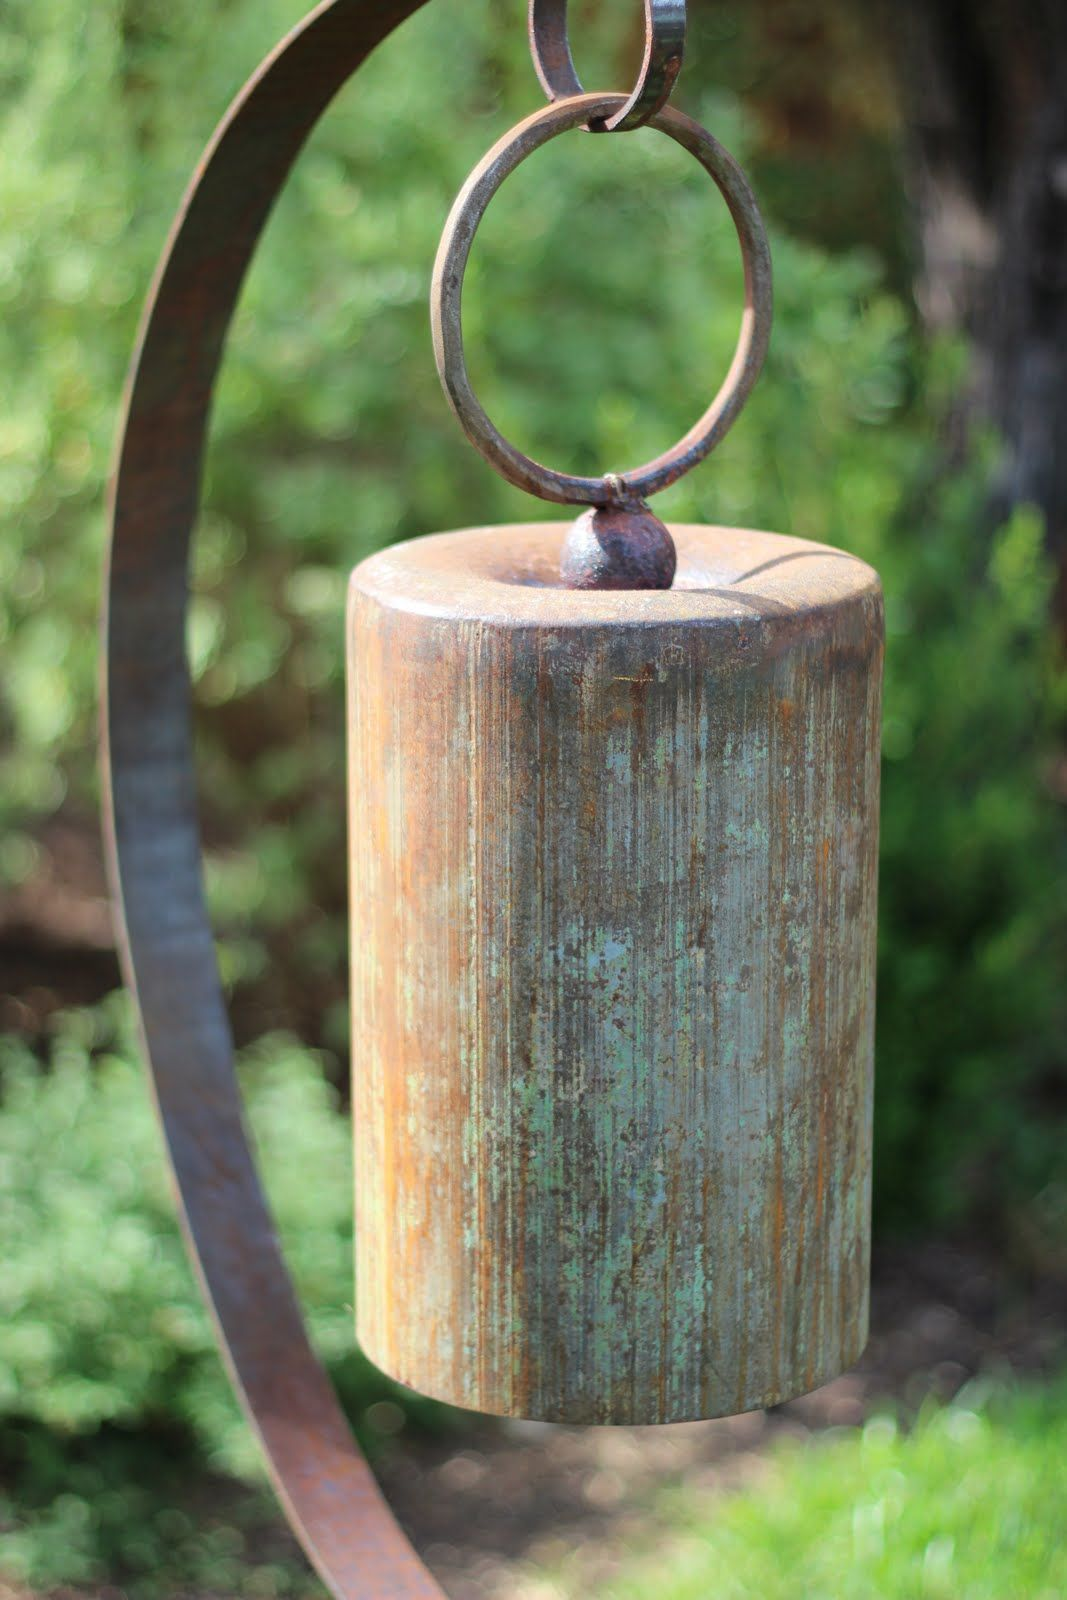 Charmant Large Bell On Stand, I Love These Zen Gardens, Garden Statues, Garden  Ornaments